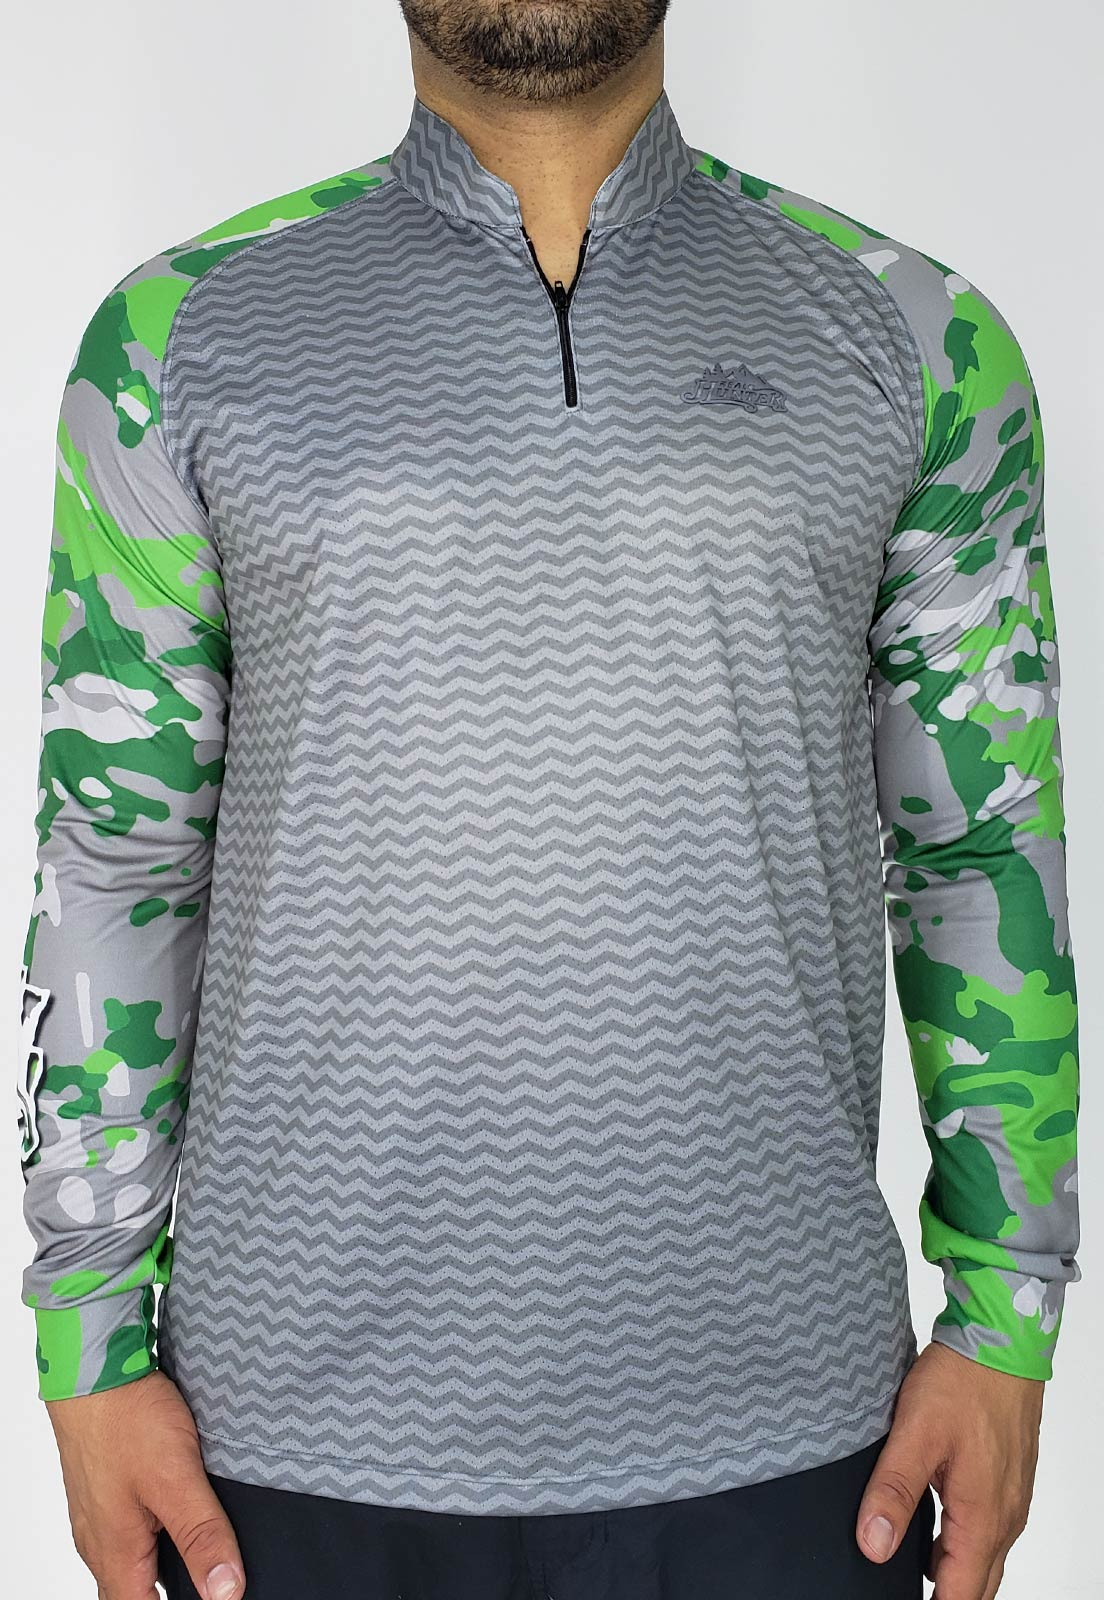 CAMISA DE PESCA FISH PRO 14 MASCULINA + BANDANA GRÁTIS  - REAL HUNTER OUTDOORS